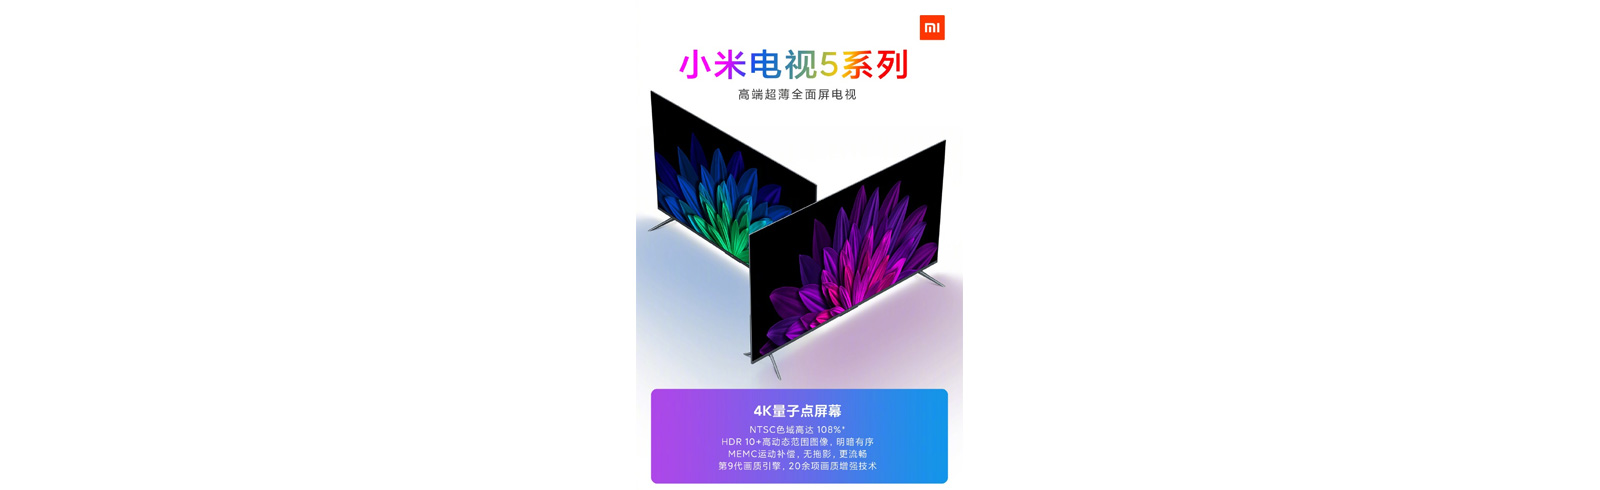 Xiaomi Mi Tv 5 Goes Official As Well With Three Sizes 4k Uhd Resolution